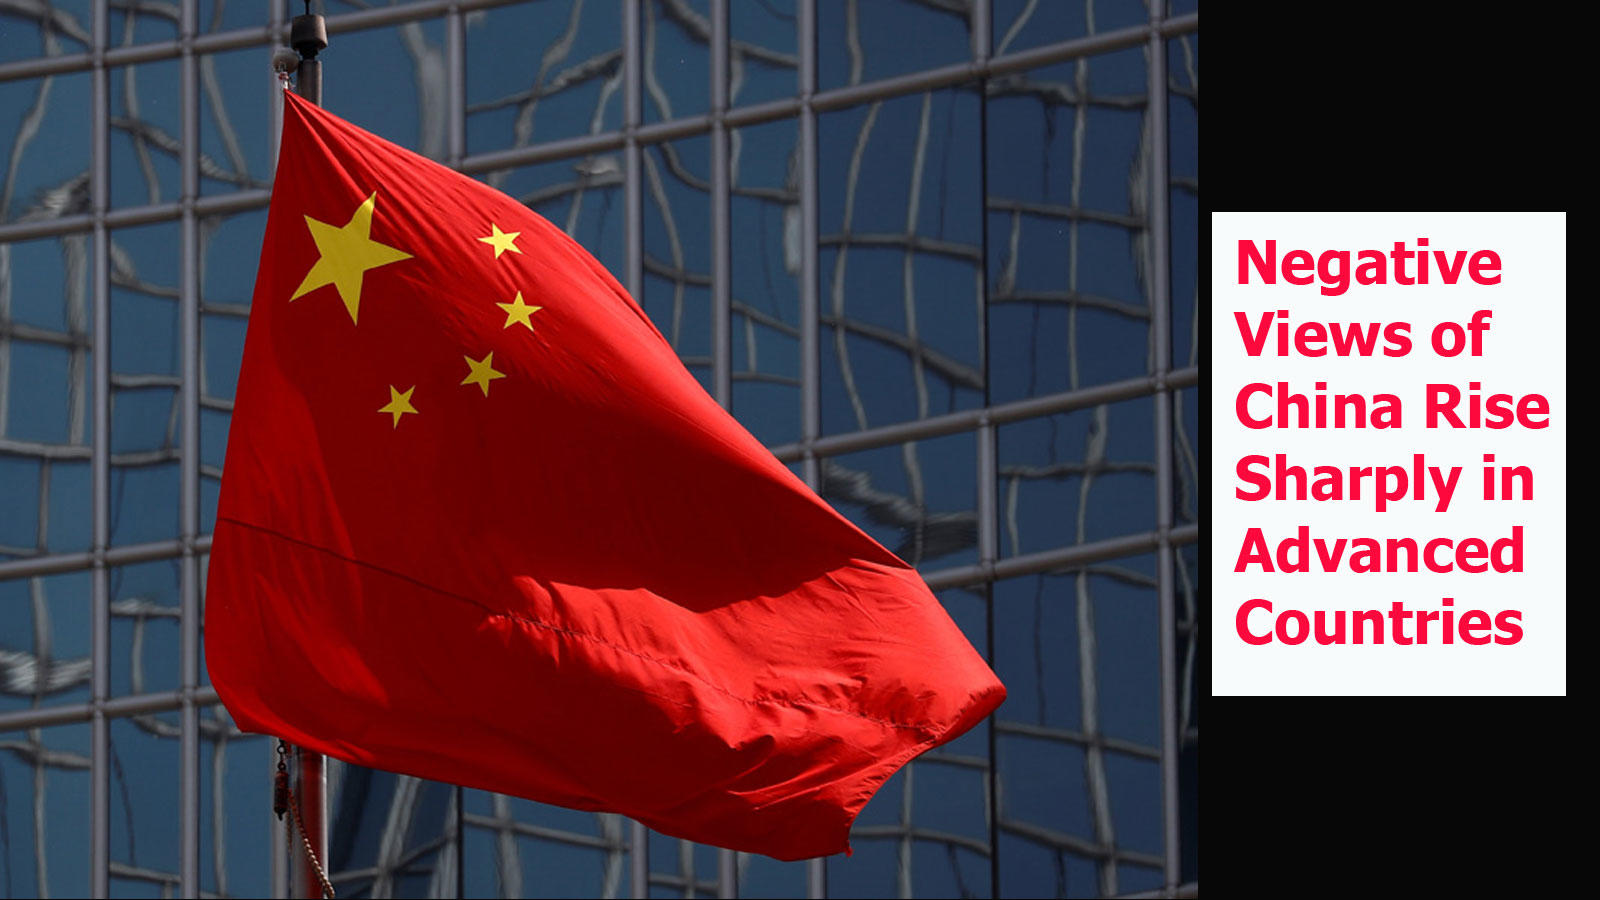 Negative views of China rise sharply in advanced countries